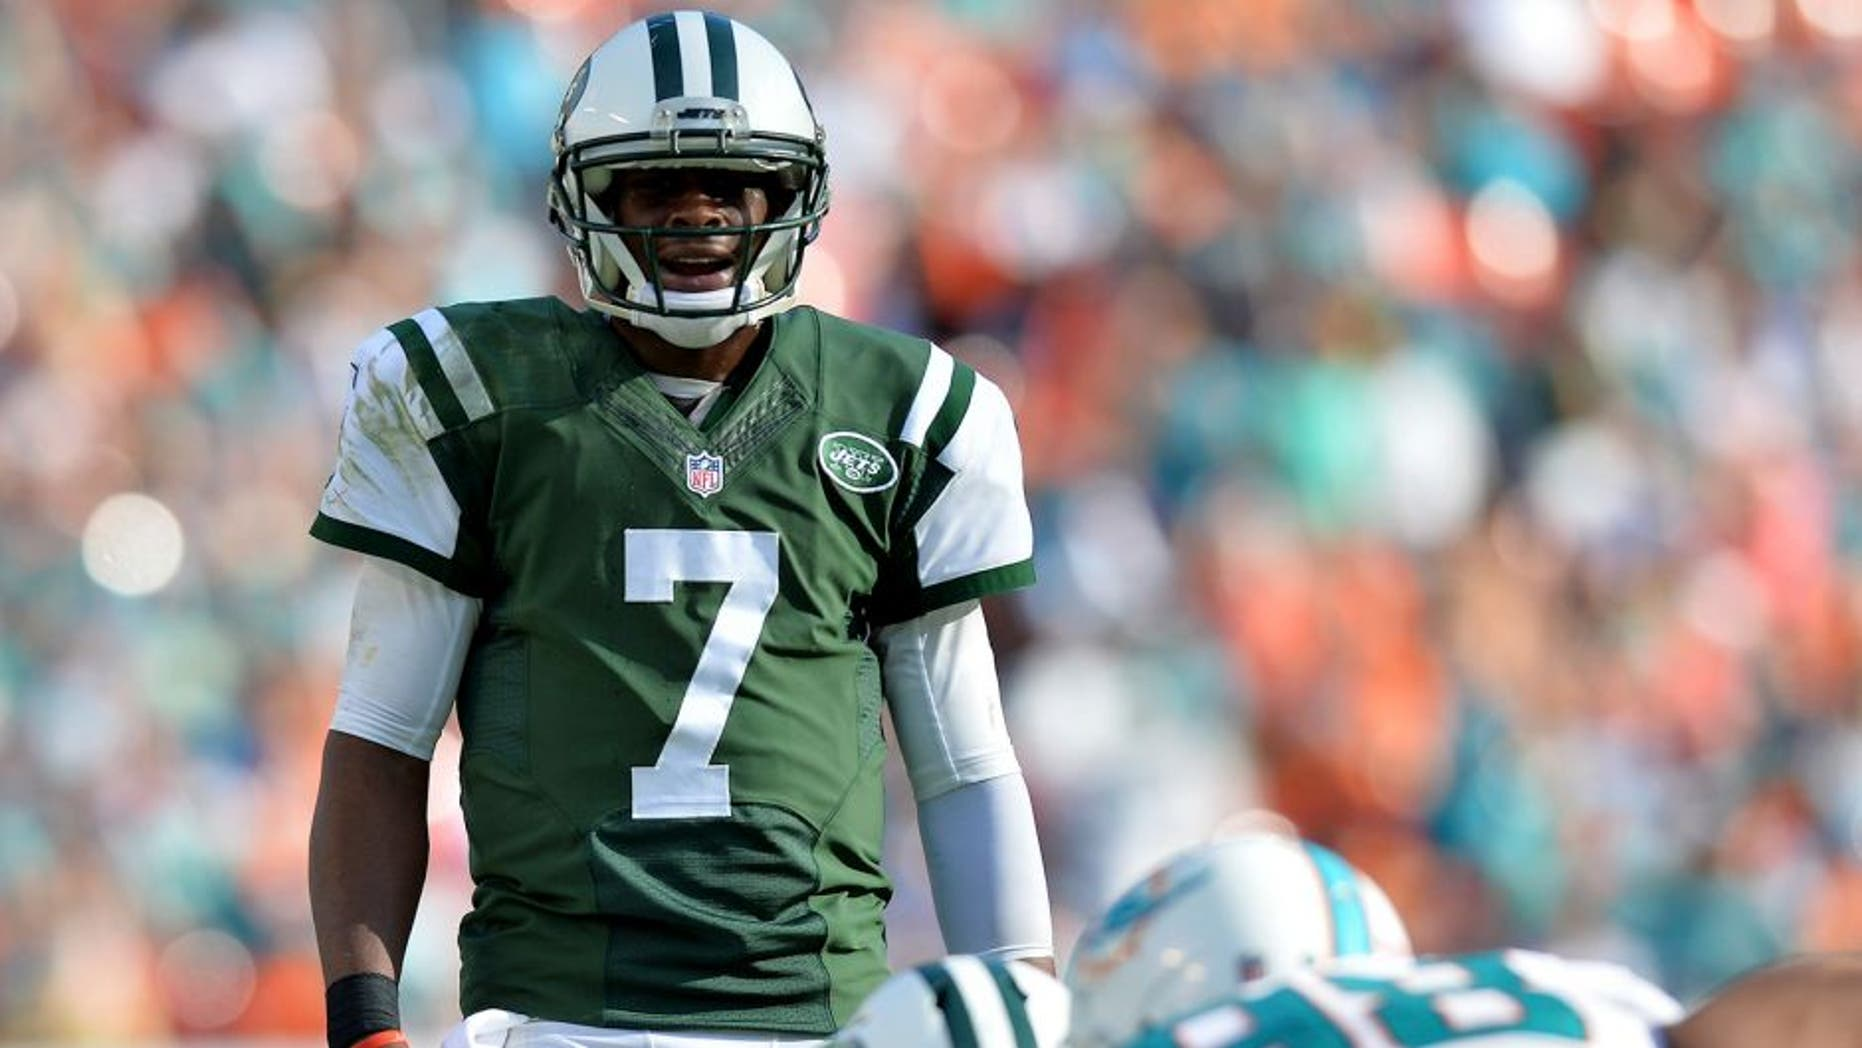 Dec 28, 2014; Miami Gardens, FL, USA; New York Jets quarterback Geno Smith (7) yells out from the line of scrimmage against the Miami Dolphins during the second half at Sun Life Stadium. Mandatory Credit: Steve Mitchell-USA TODAY Sports